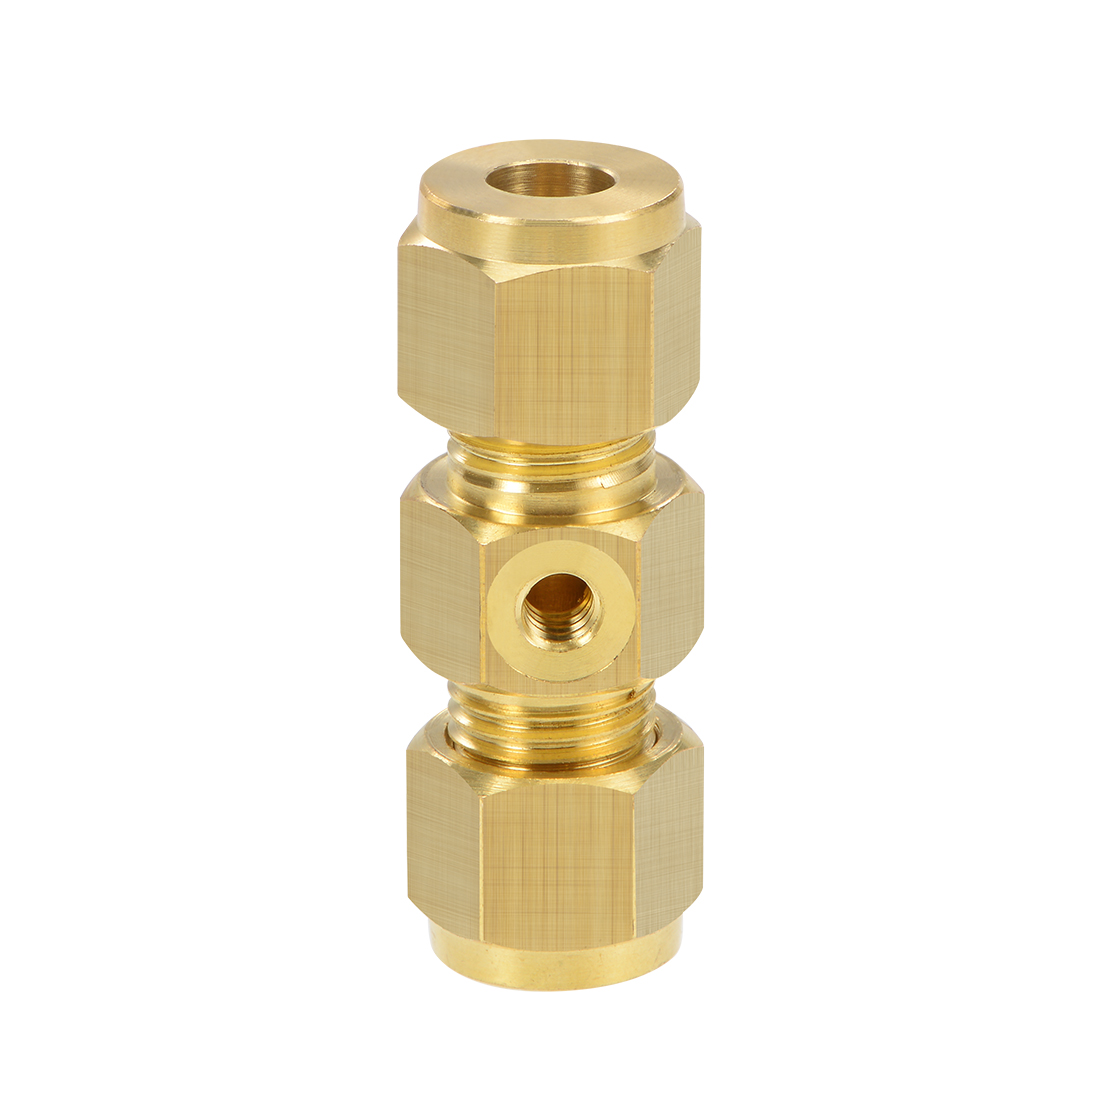 Brass Compression Tube Fitting 8mm OD UNC 10-24 Nozzle Hole Pipe Adapter